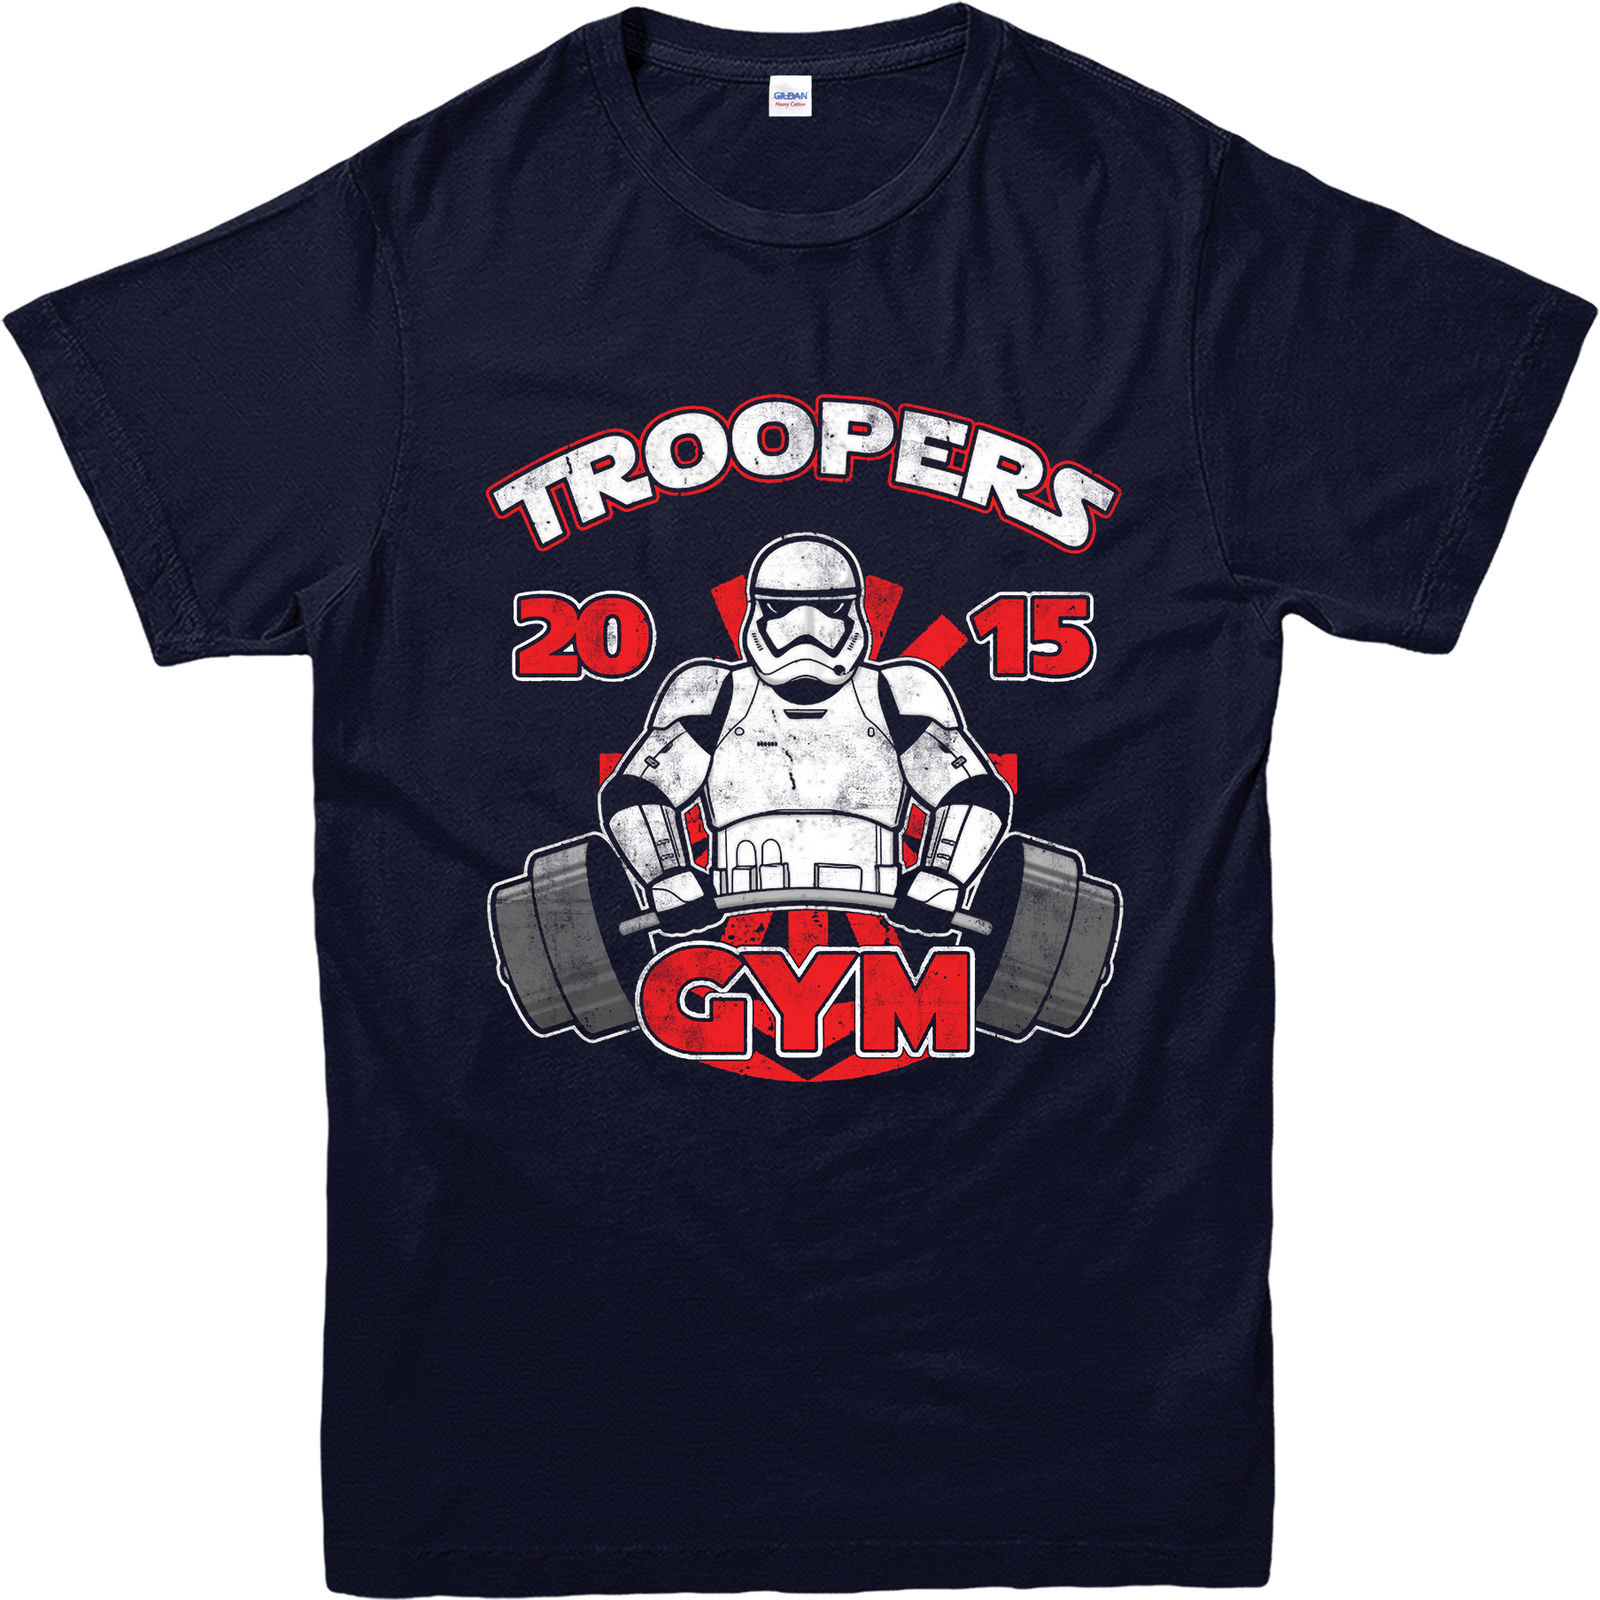 Star Wars T Shirt Stormtrooper Gym BodyBuilding Spoof T Shirt Inspired Top Youth Round Collar Customized T Shirts free shipping in T Shirts from Men 39 s Clothing